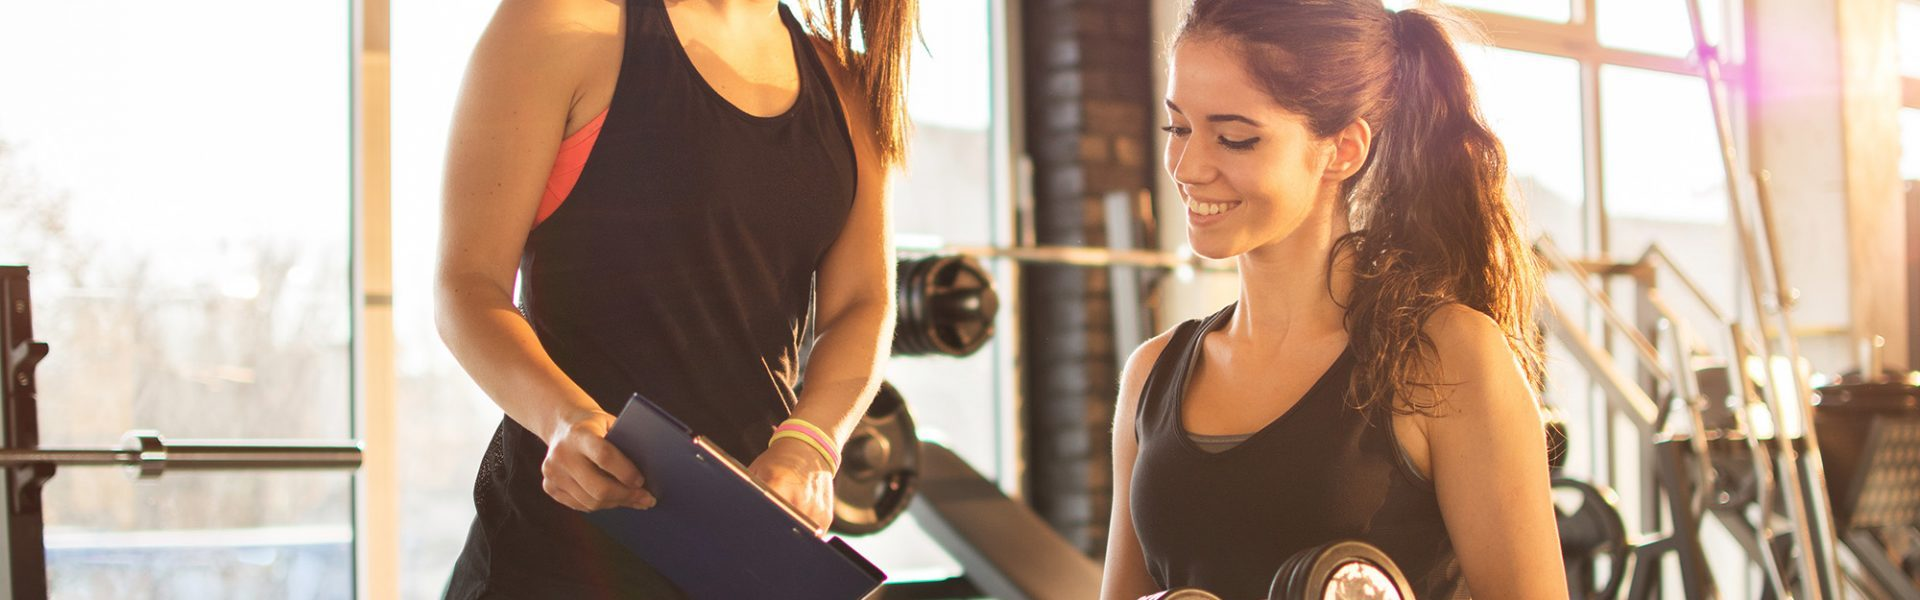 fitness instructor with client with insurance